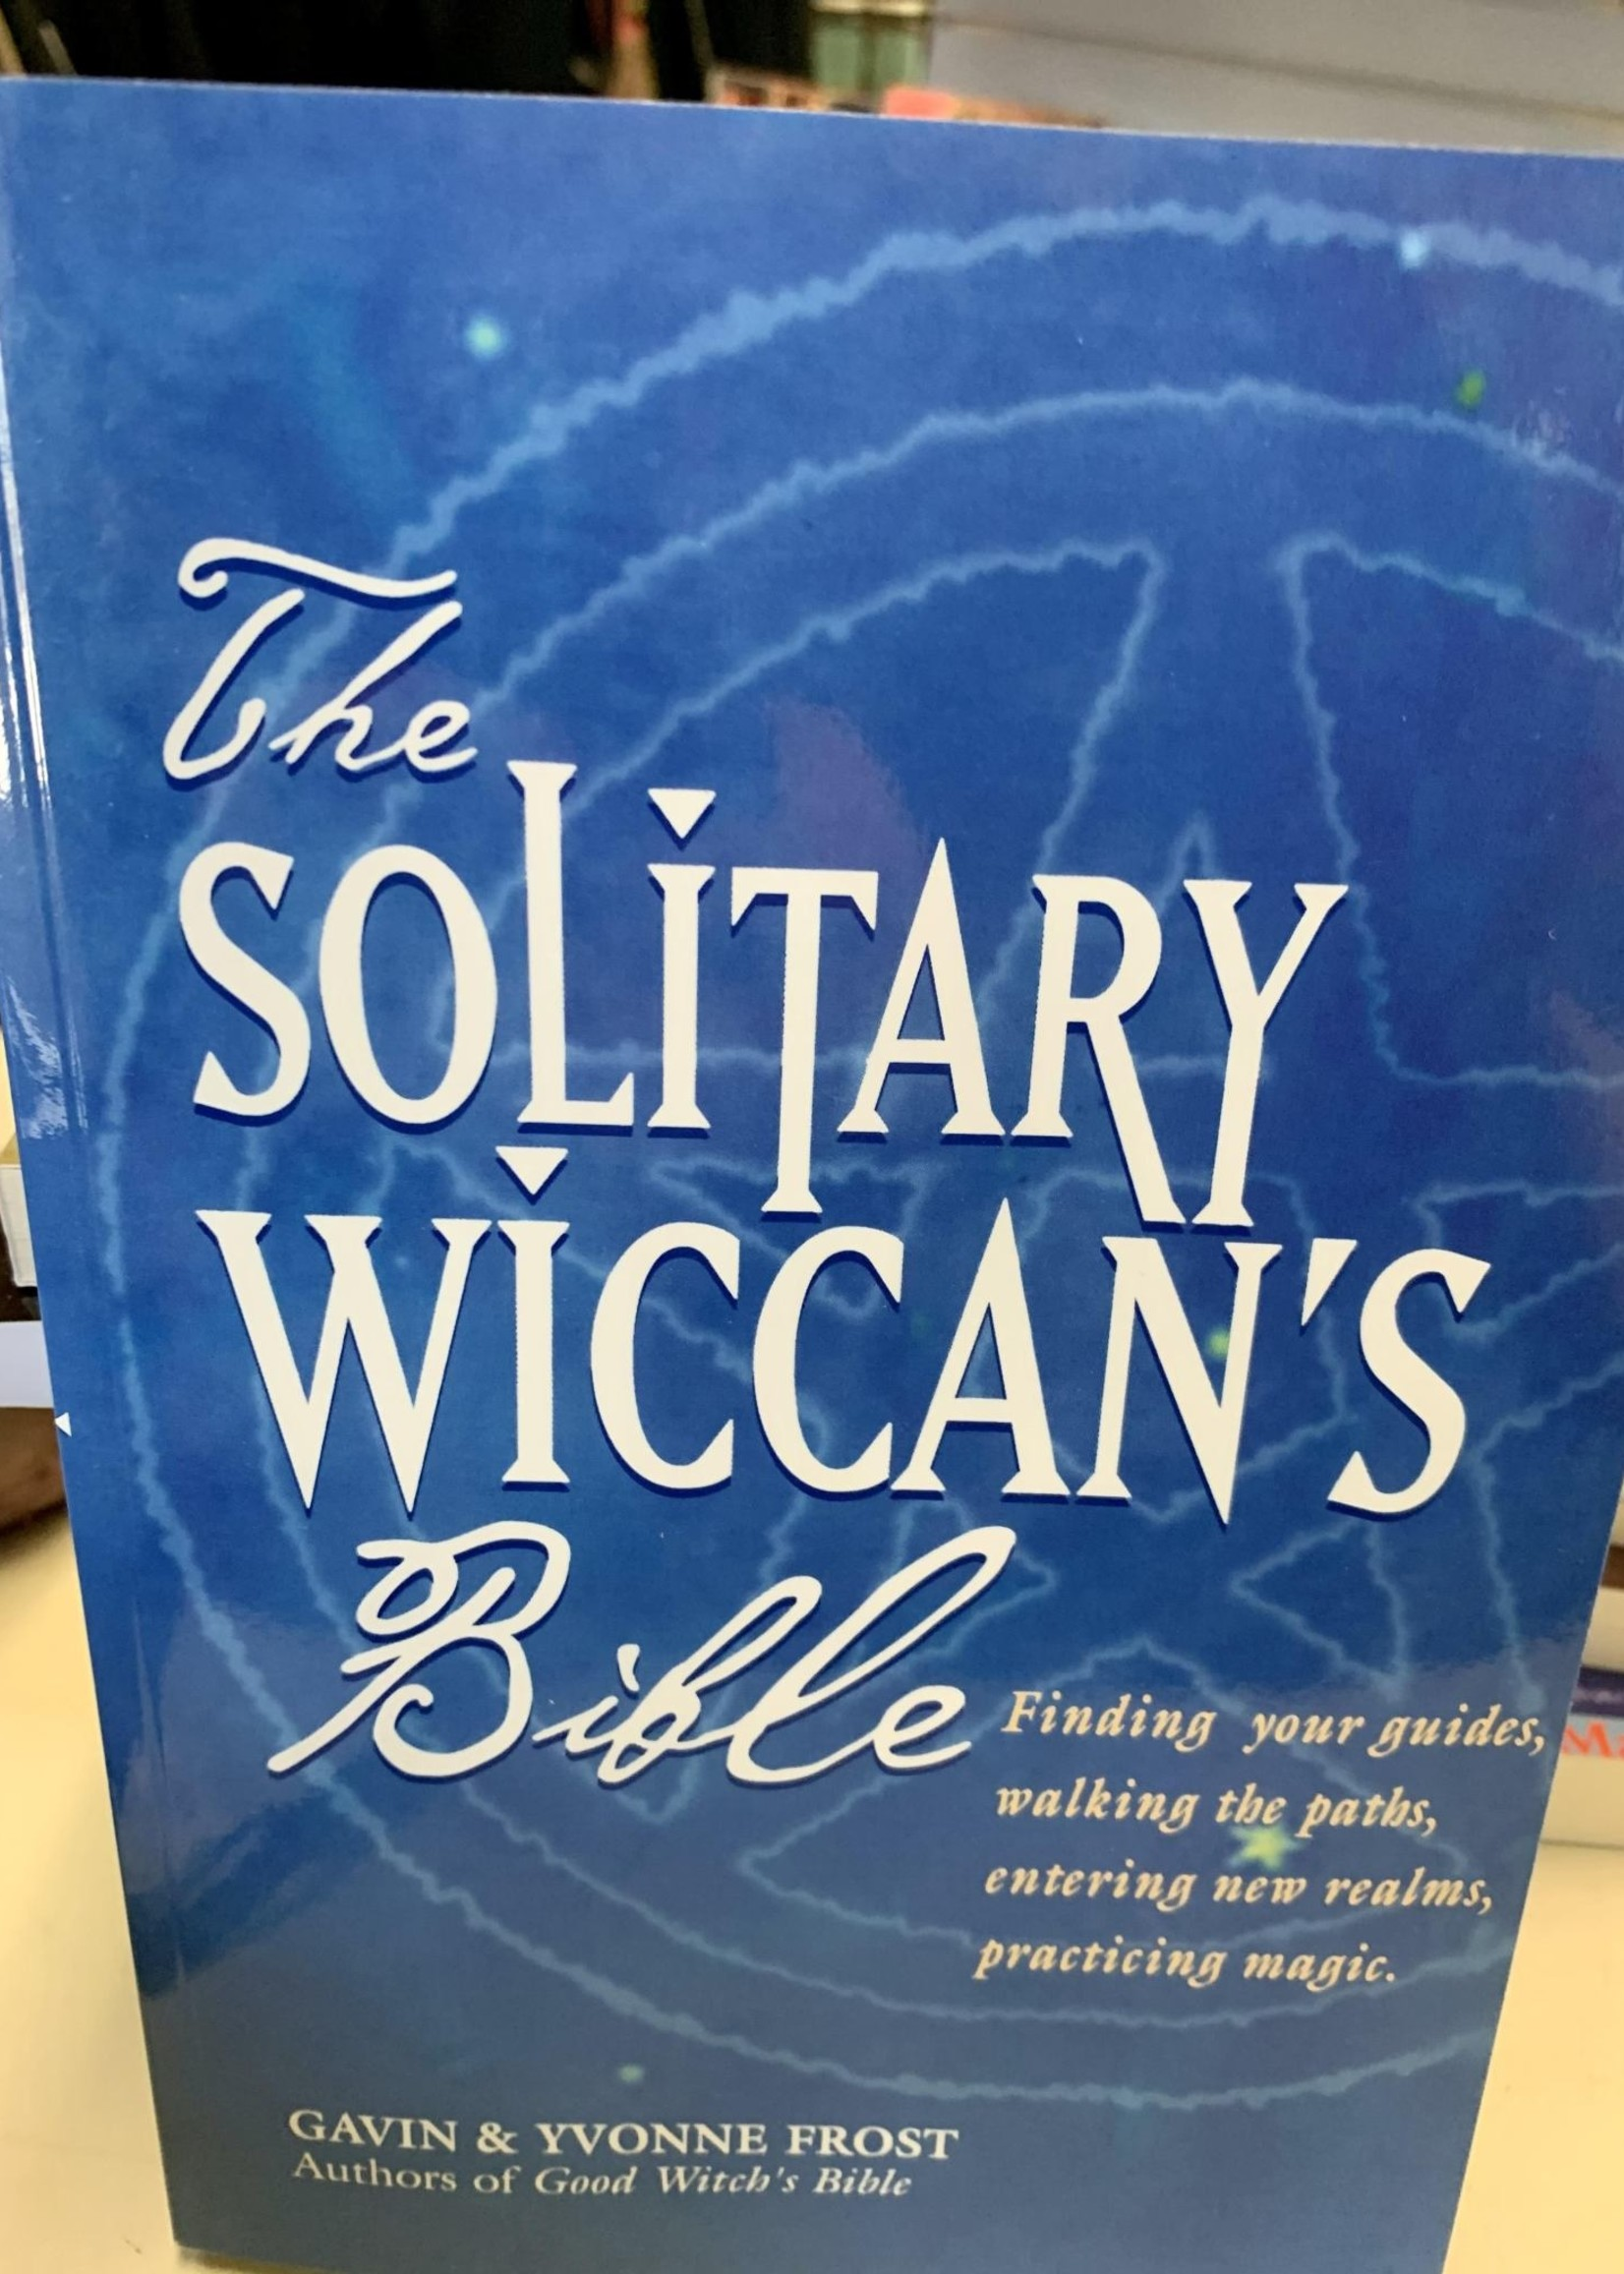 The Solitary Wiccan's Bible - Gavin & Yvonne Frost